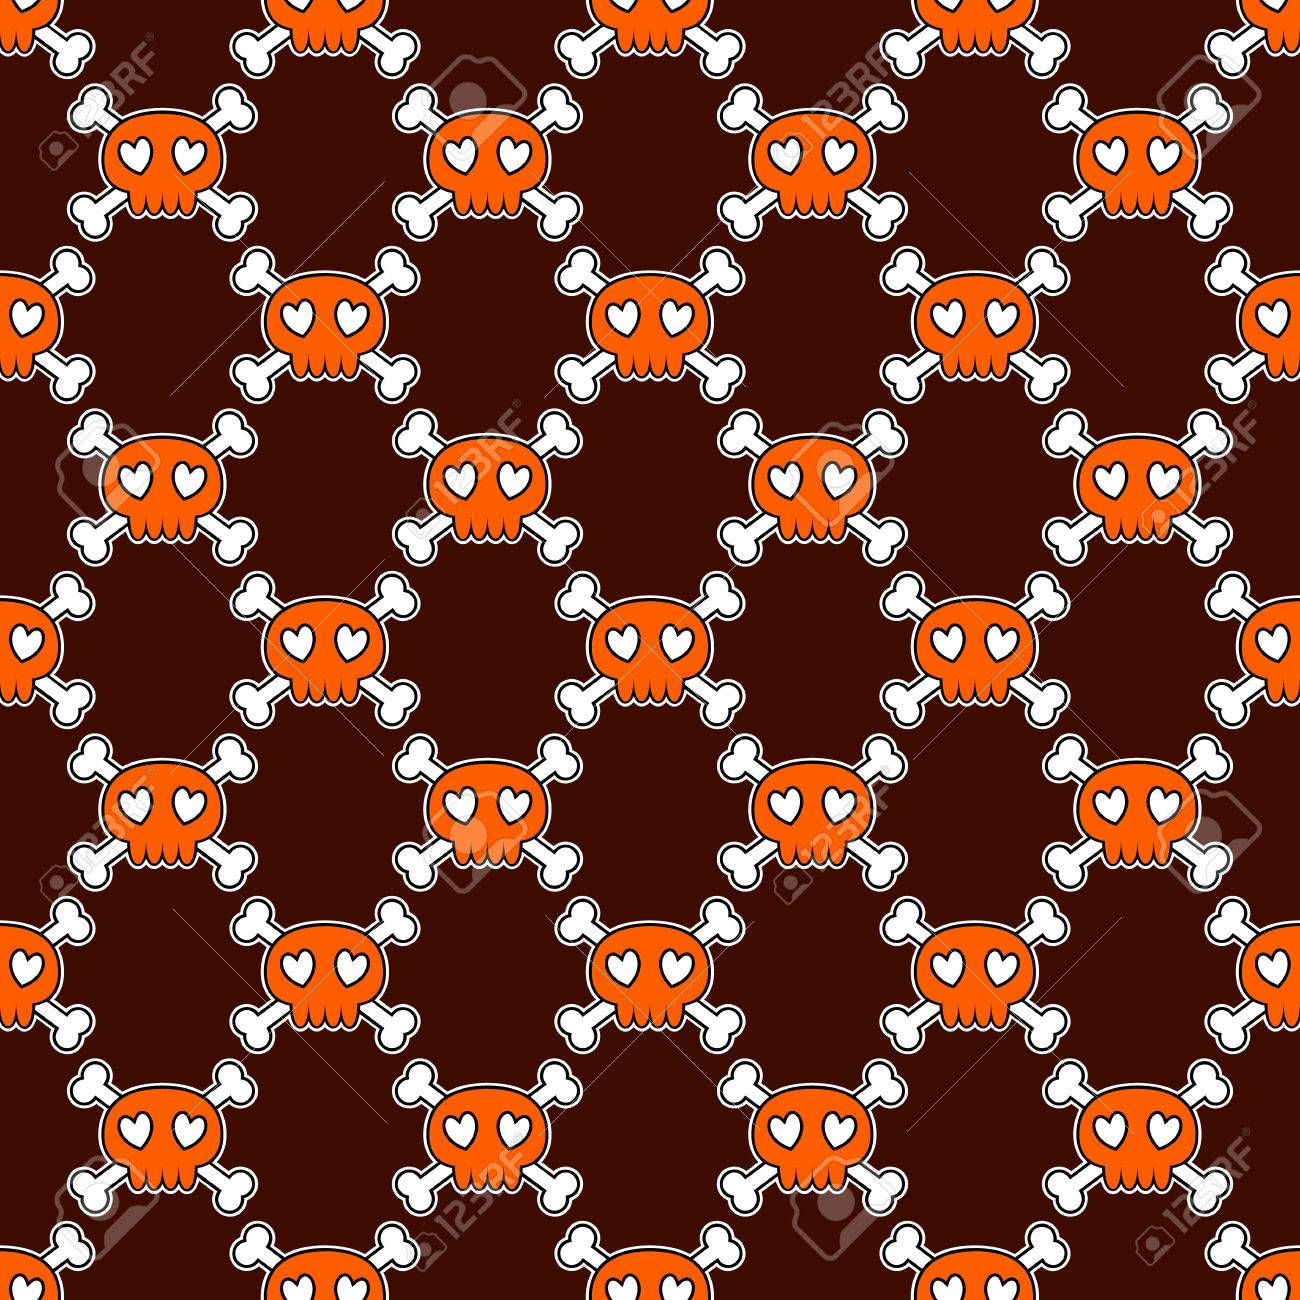 Popular Wallpaper Halloween Skull - 64216487-seamless-halloween-pattern-wallpaper-with-orange-skulls-on-brown-background-tileable-backdrop-with-h  You Should Have_481215.jpg